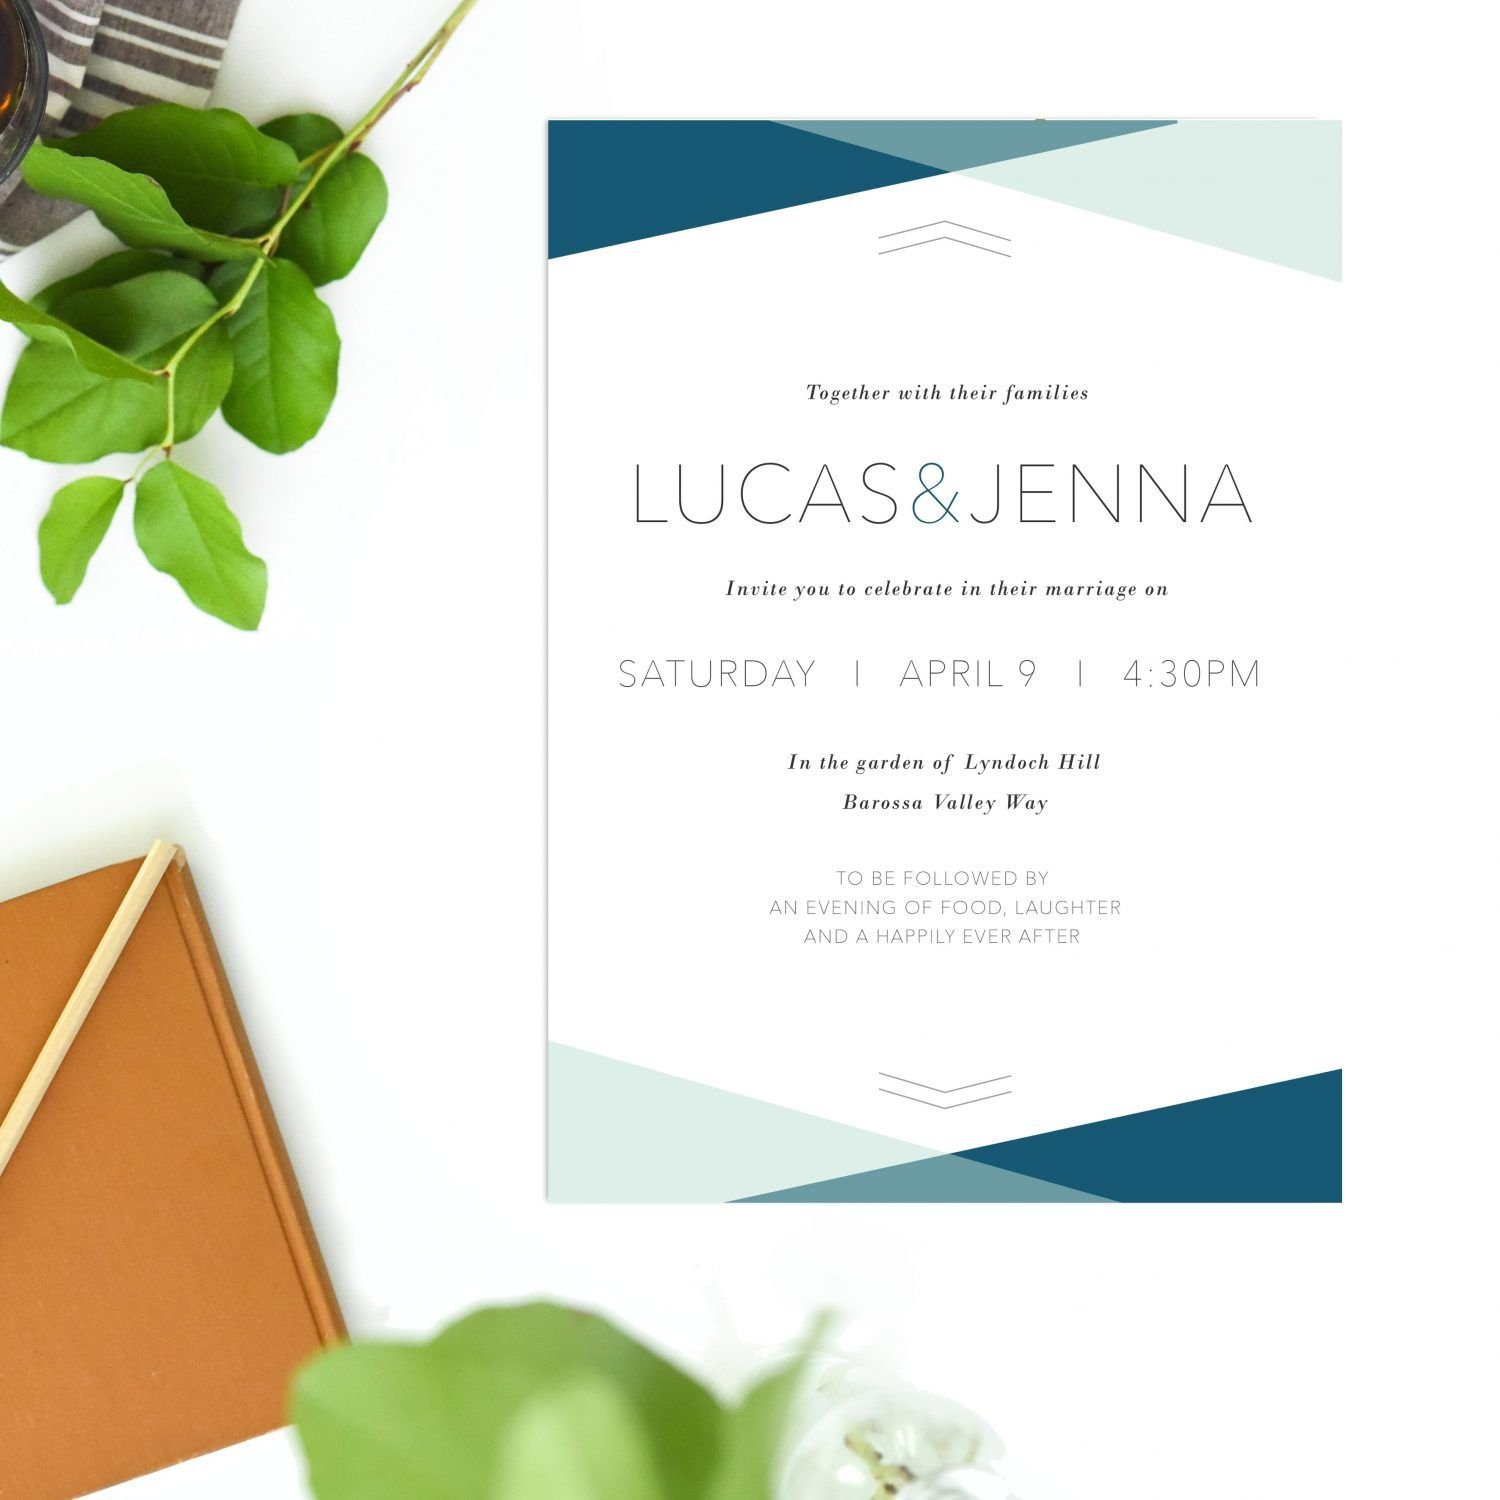 Minimal Wedding Invitations Simple Clean Modern Invites Sail and ...